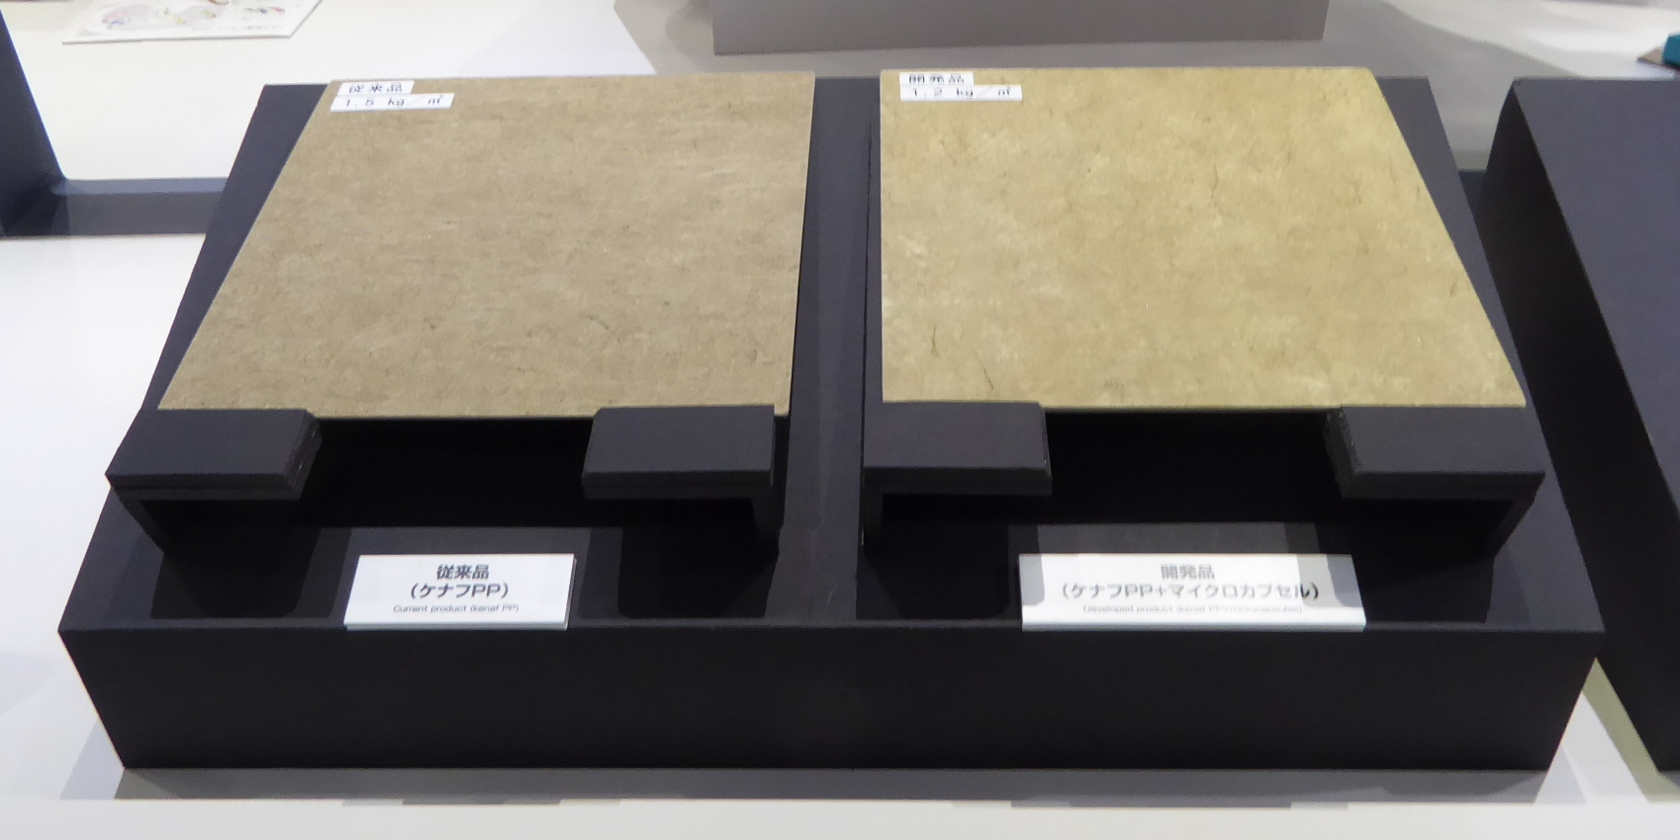 Toyota Boshoku Develops Lightweight Door Trim Material With Kenaf